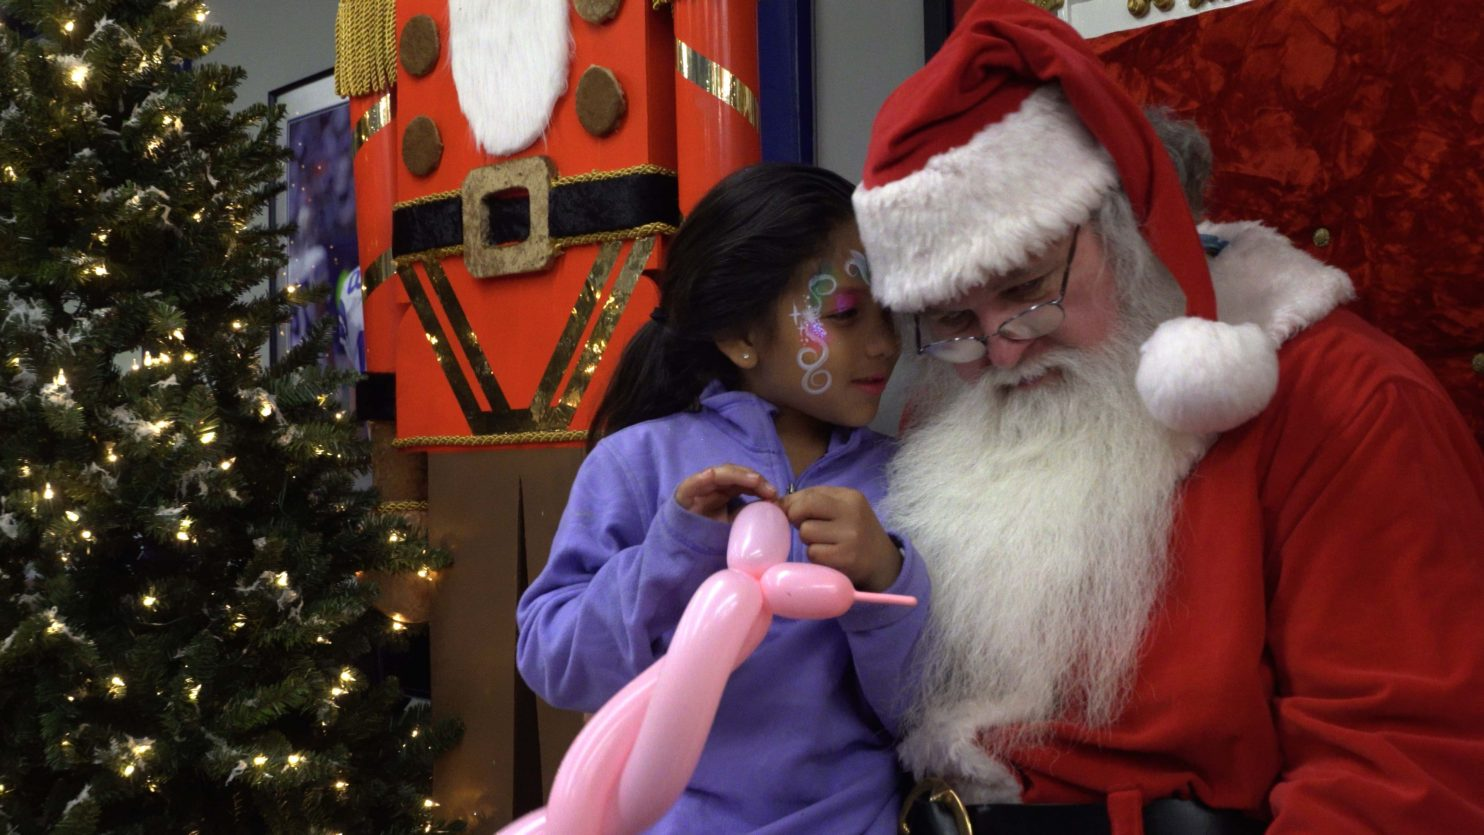 Little girl tells Santa what she wants for Christmas - screen grab from event video coverage for Chevrolet